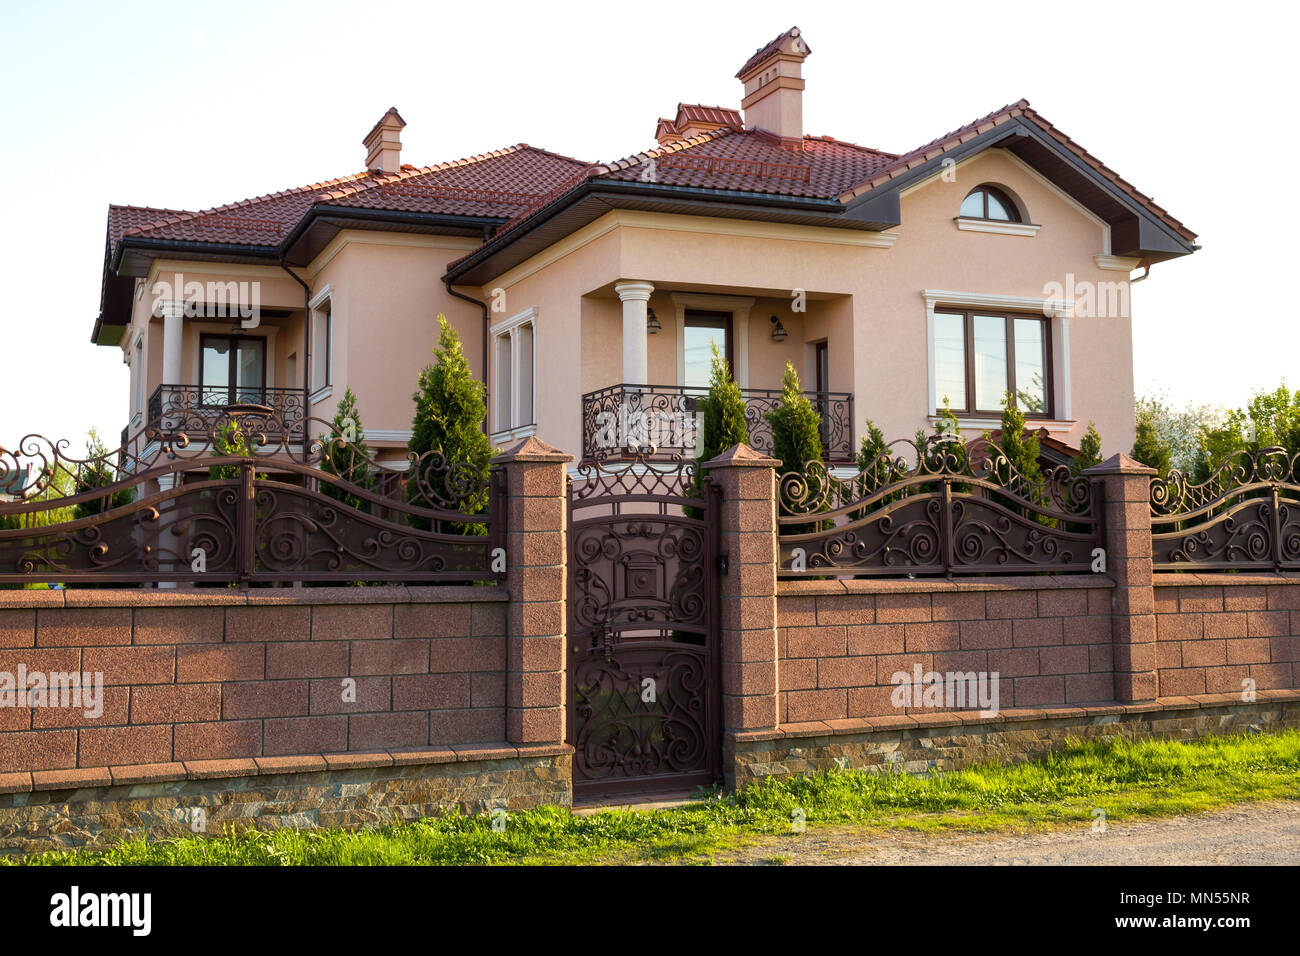 New Modern Luxurious Expensive Residential Two Story Cottage House With Shingle Roof Big Windows And Balconies Behind Stone Fence Iron Forged Ga